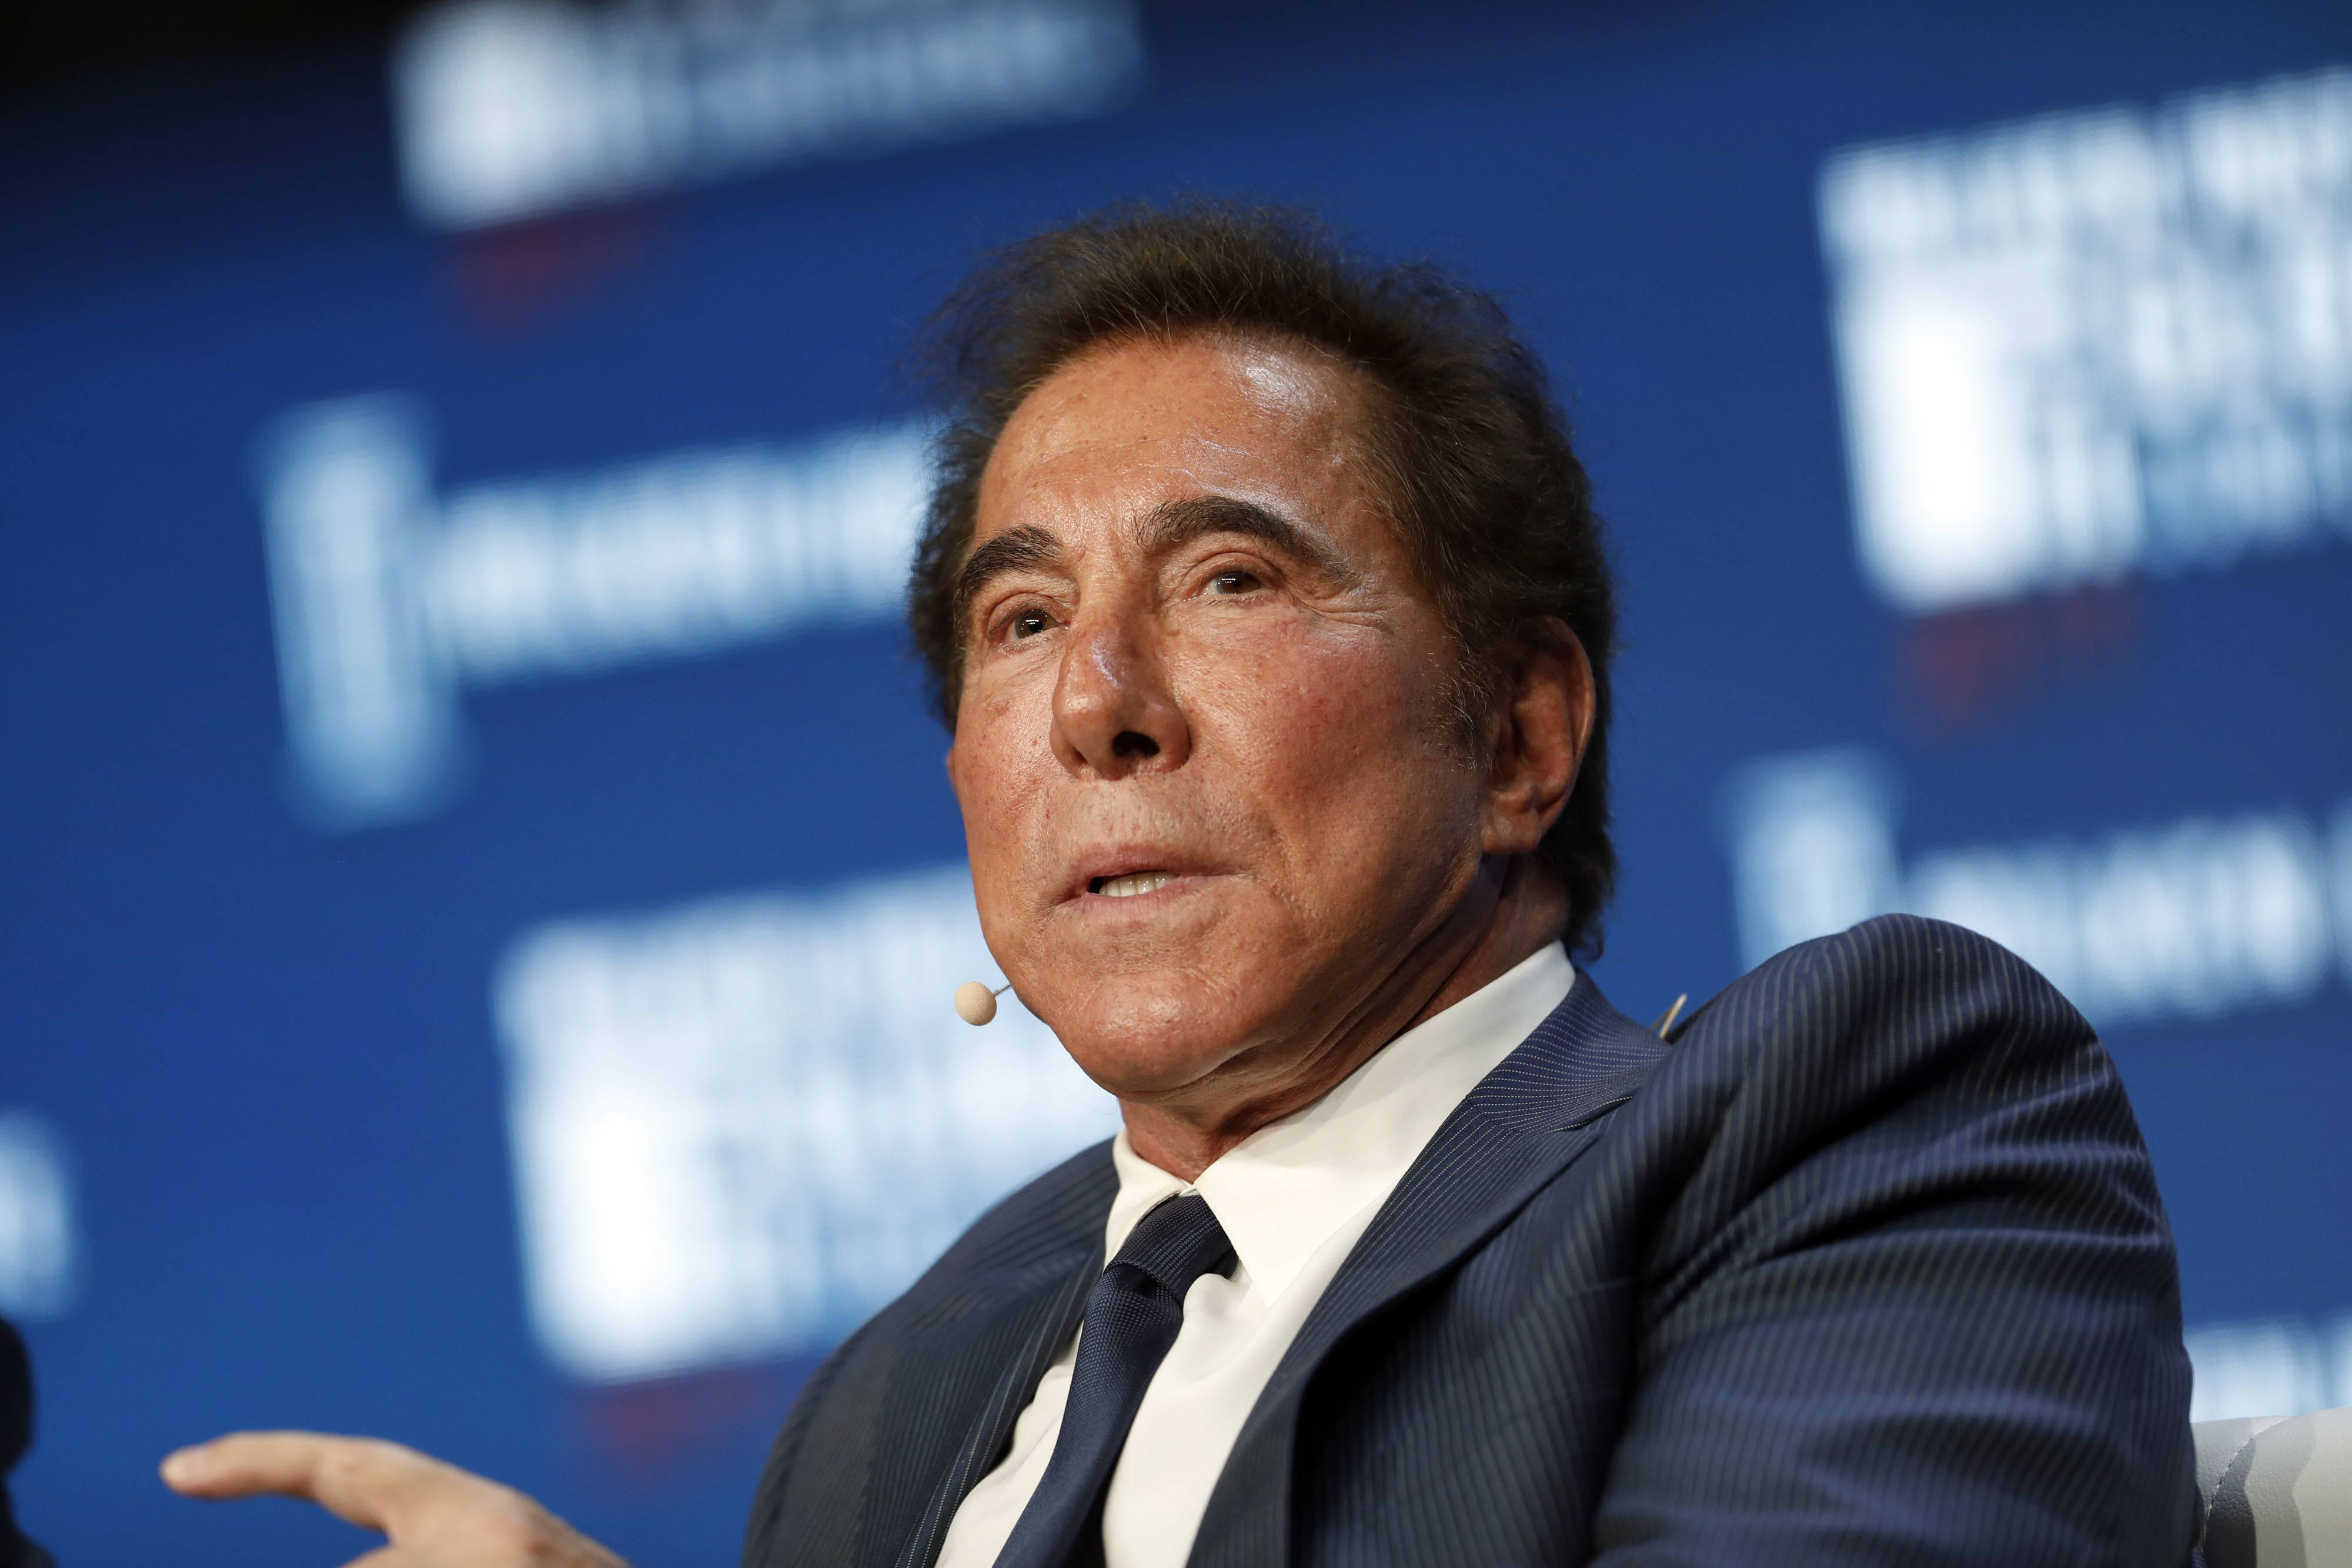 Billionaire Steve Wynn, chairman and chief executive officer of Wynn Resorts Ltd., speaks during the Milken Institute Global Conference in Beverly Hills, California, U.S., on Wednesday, May 3, 2017. The conference is a unique setting that convenes individuals with the capital, power and influence to move the world forward meet face-to-face with those whose expertise and creativity are reinventing industry, philanthropy and media. Photographer: Patrick T. Fallon/Bloomberg via Getty Images